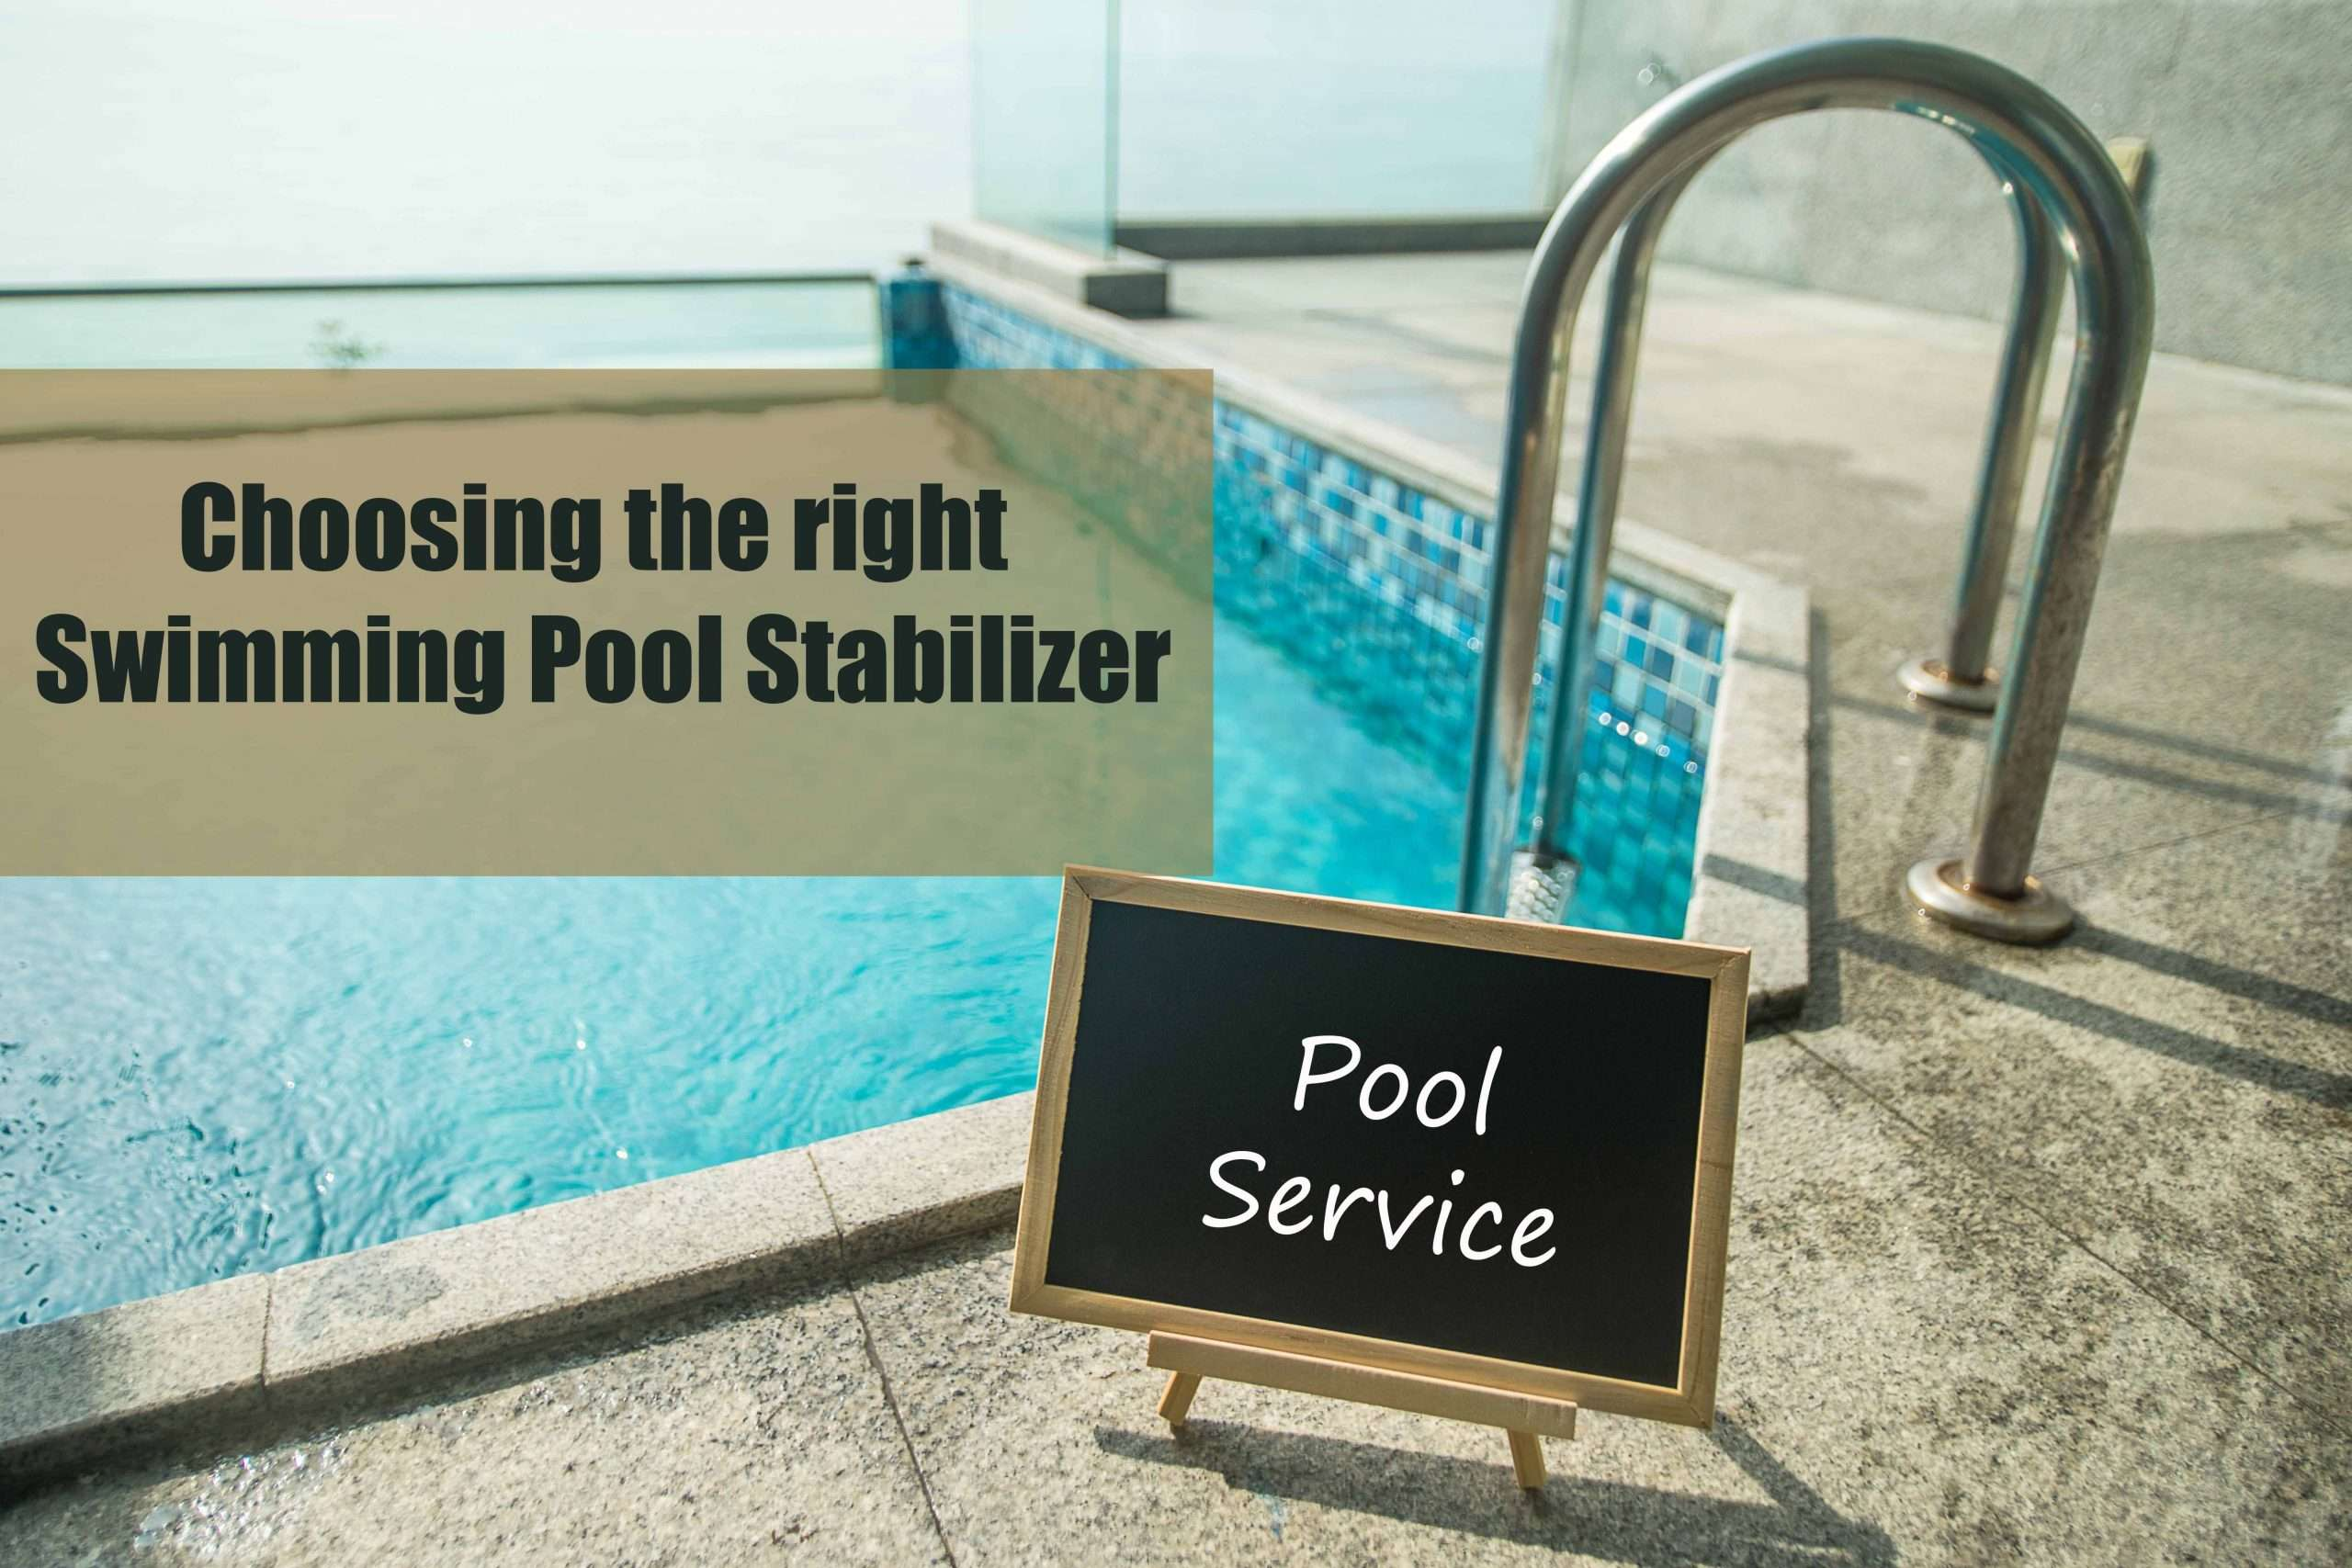 Choosing the right Swimming Pool Stabilizer